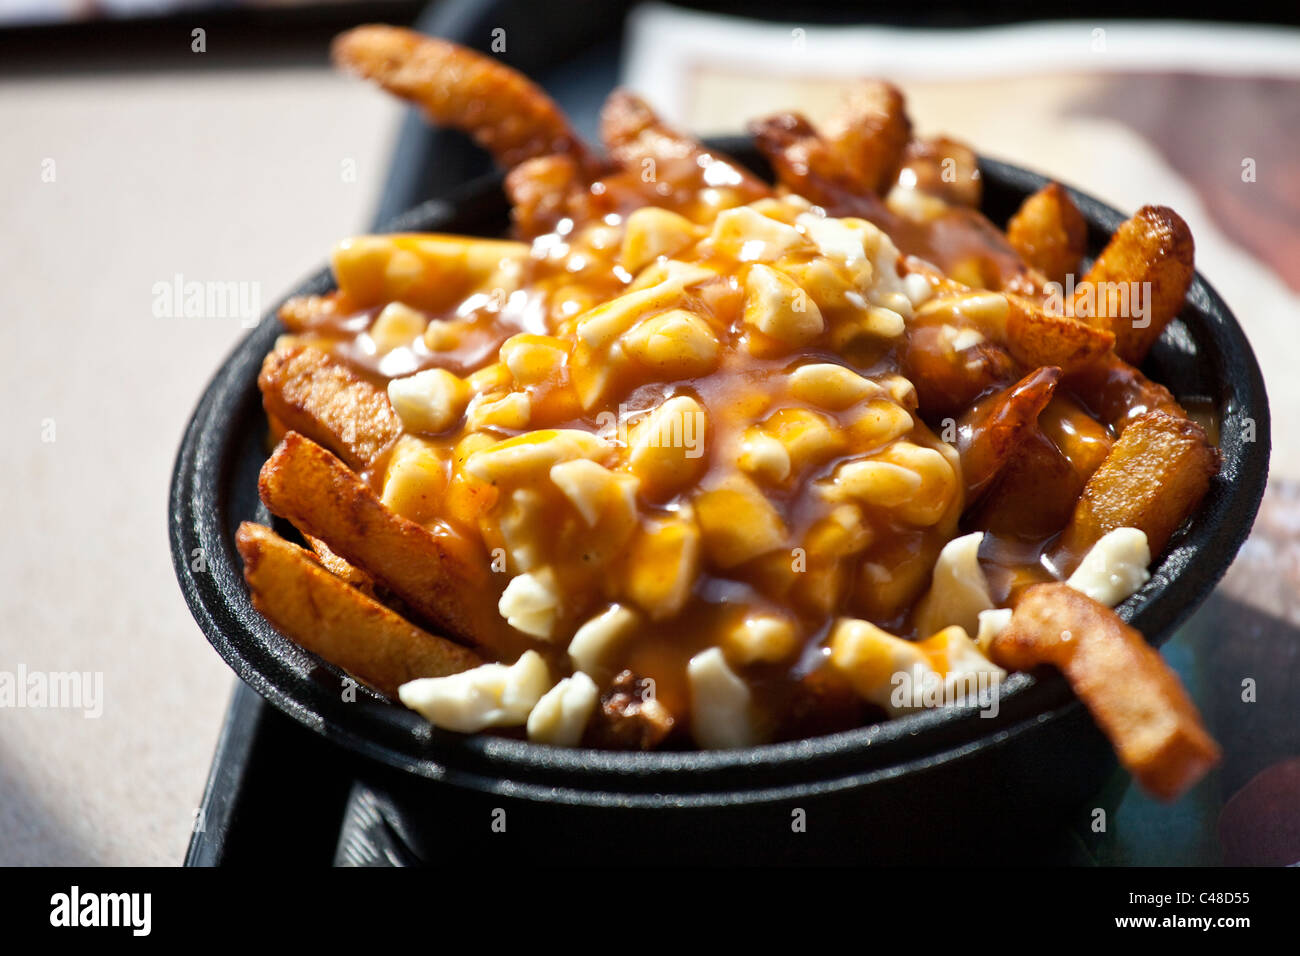 Popular Canadian Fast Food